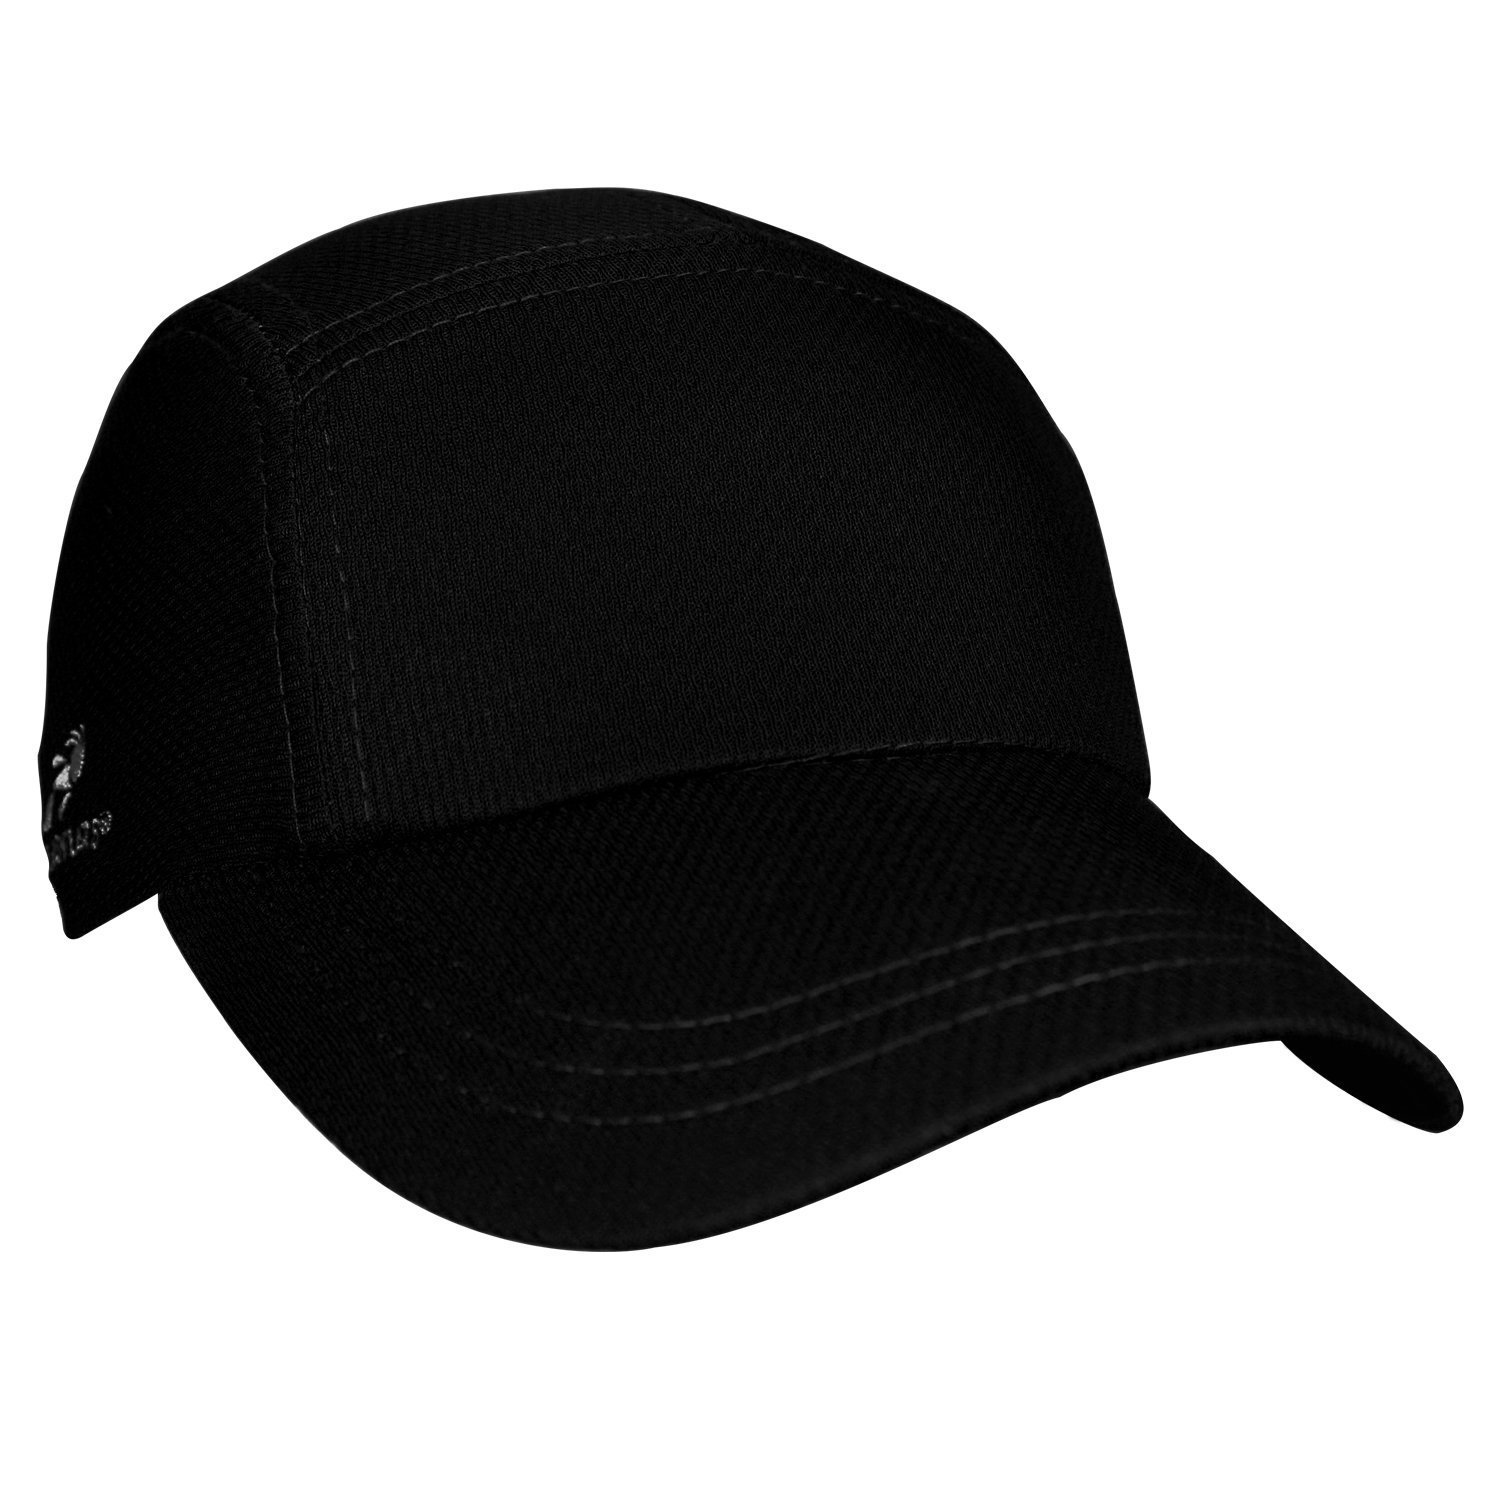 Amazon.com : Headsweats Performance Race/Running/Outdoor Sports Hat ...